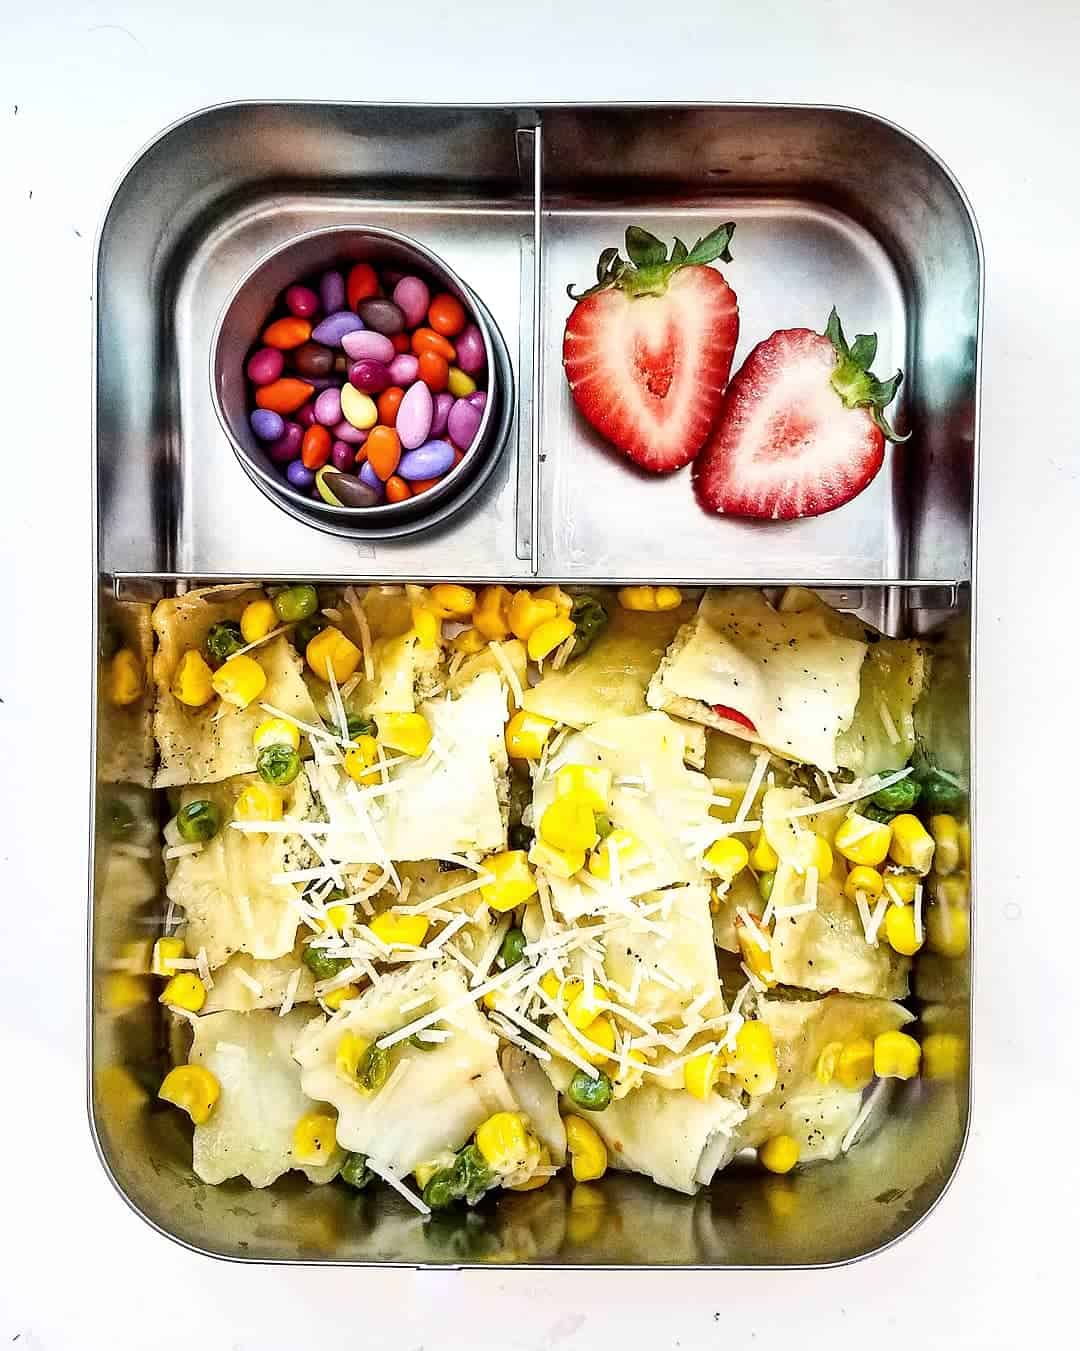 Ravioli sauteed with corn, peas and lots of parmesan cheese, Dry free chocolate covered sunflower seeds and Strawberry